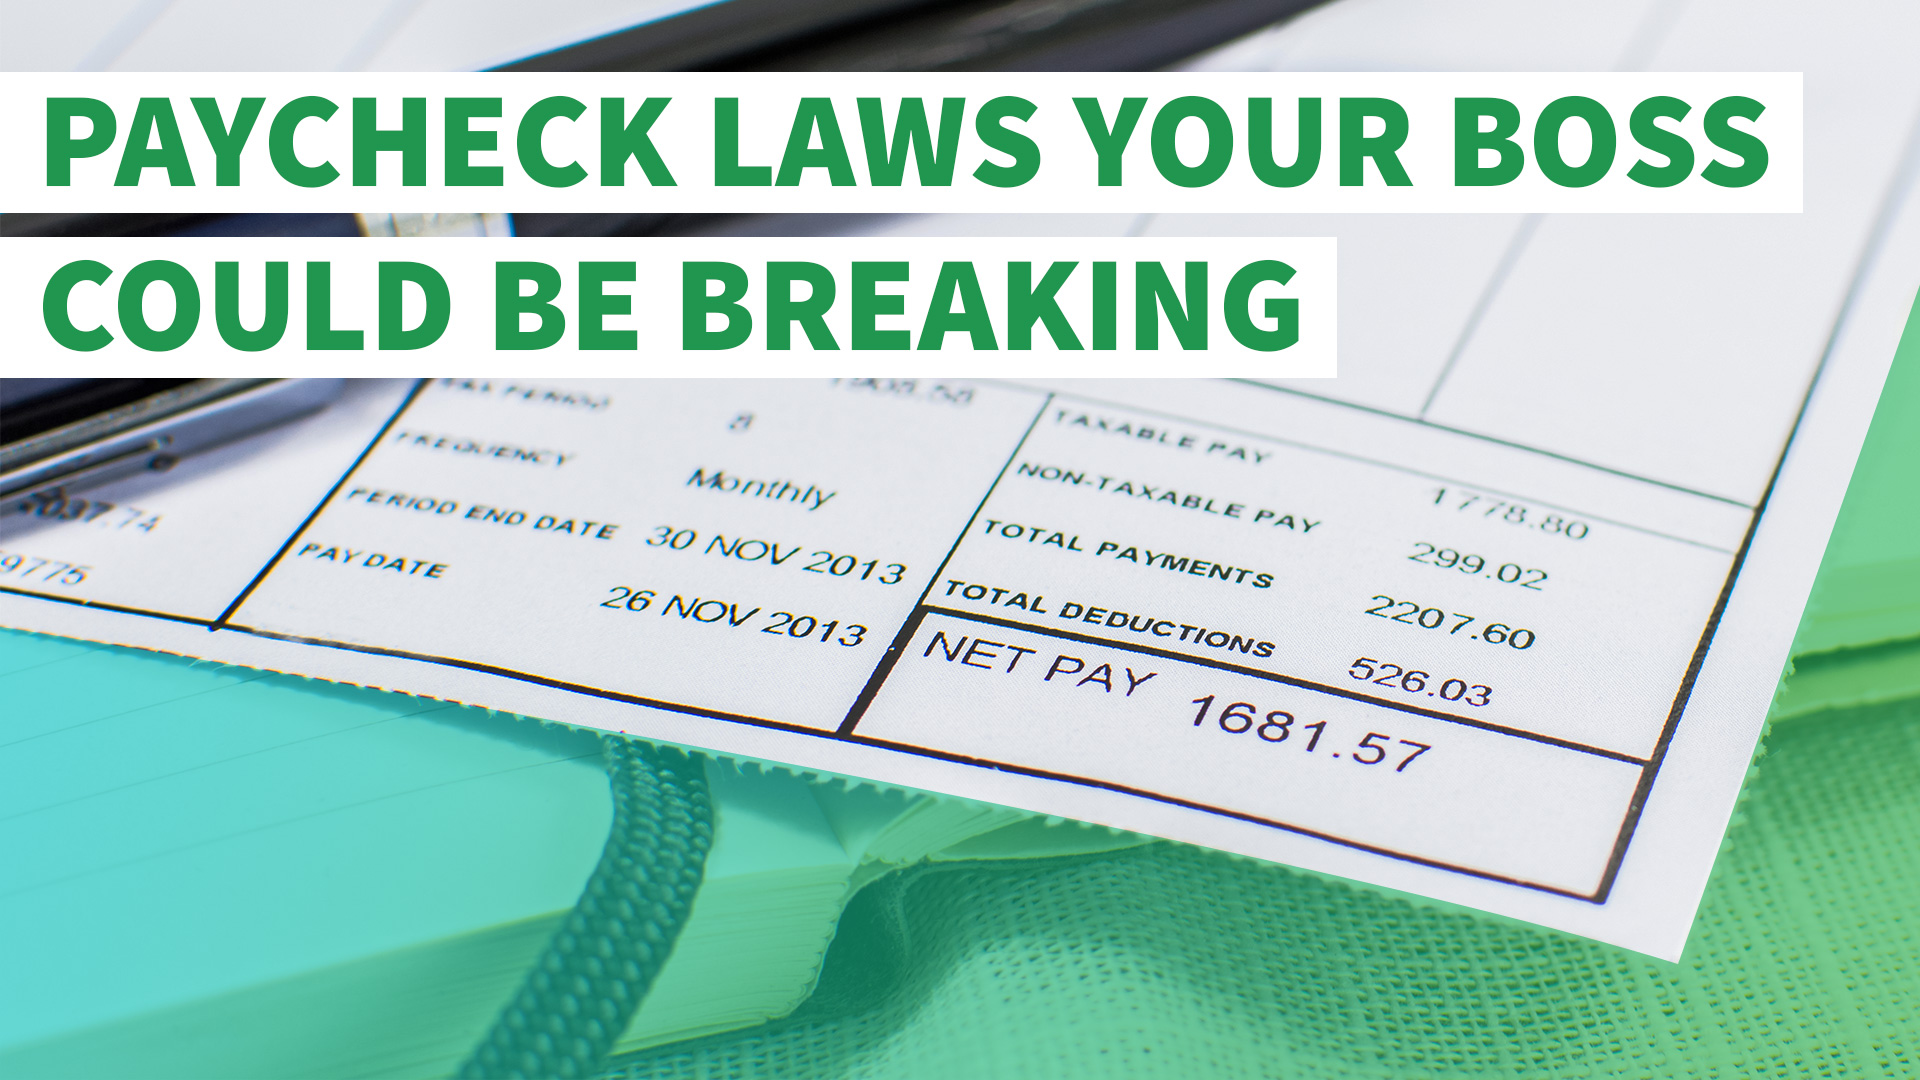 7 Paycheck Laws Your Boss Could Be Breaking